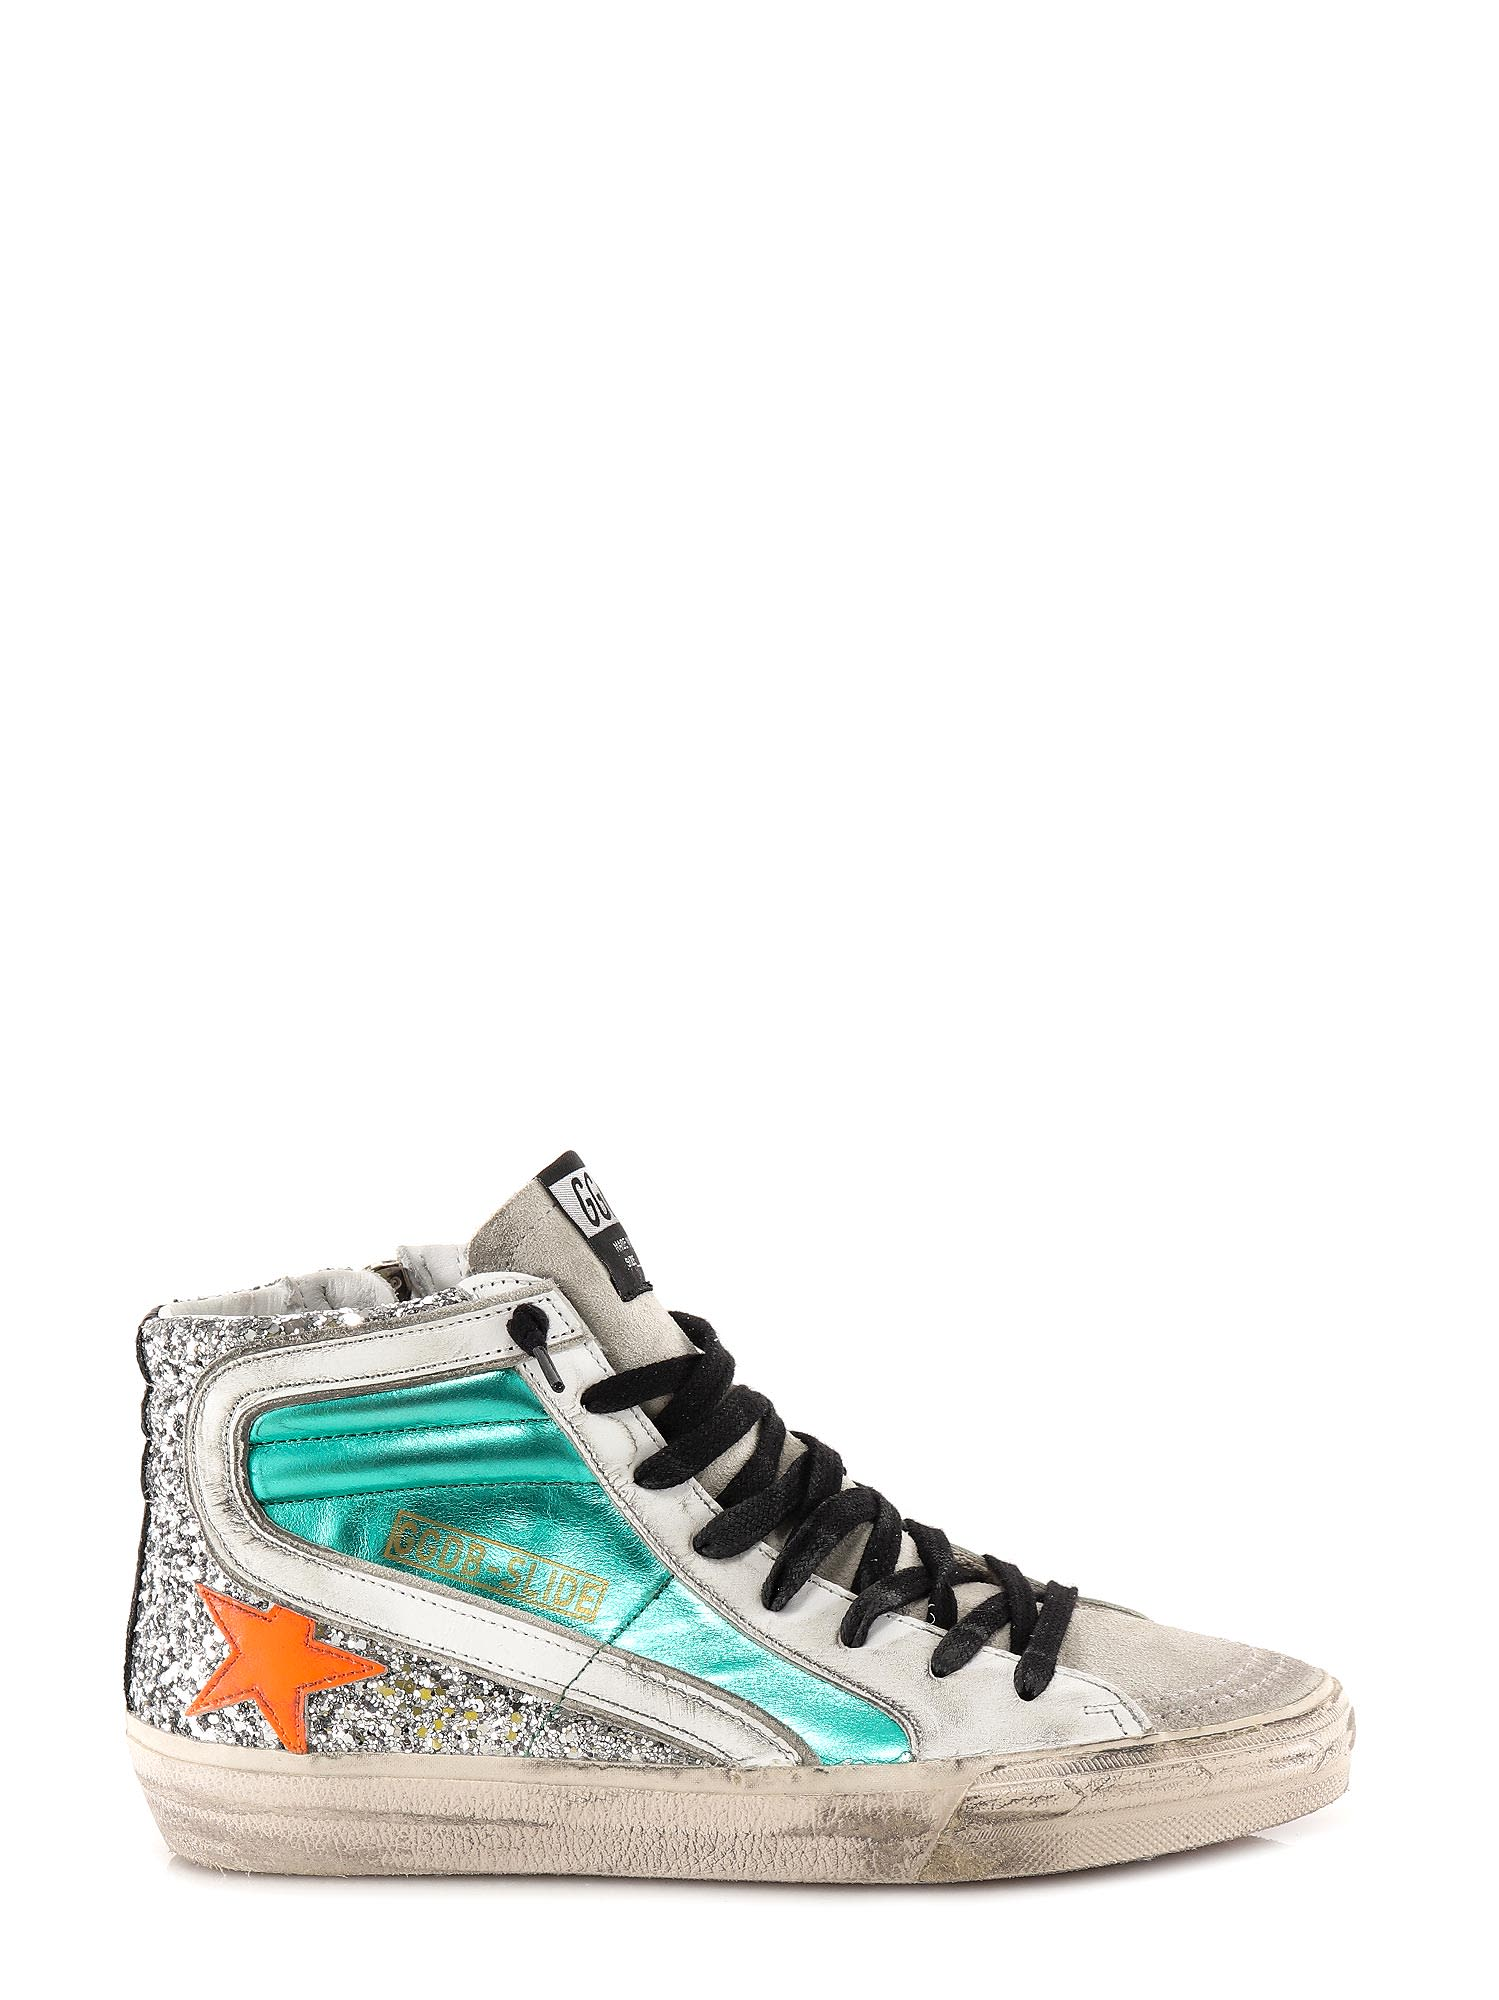 Leather sneakers- Lace-up- Leather And Glitter Upper- Zip Closure- Logo Print- Leather- External: Leather- Sole: Rubber